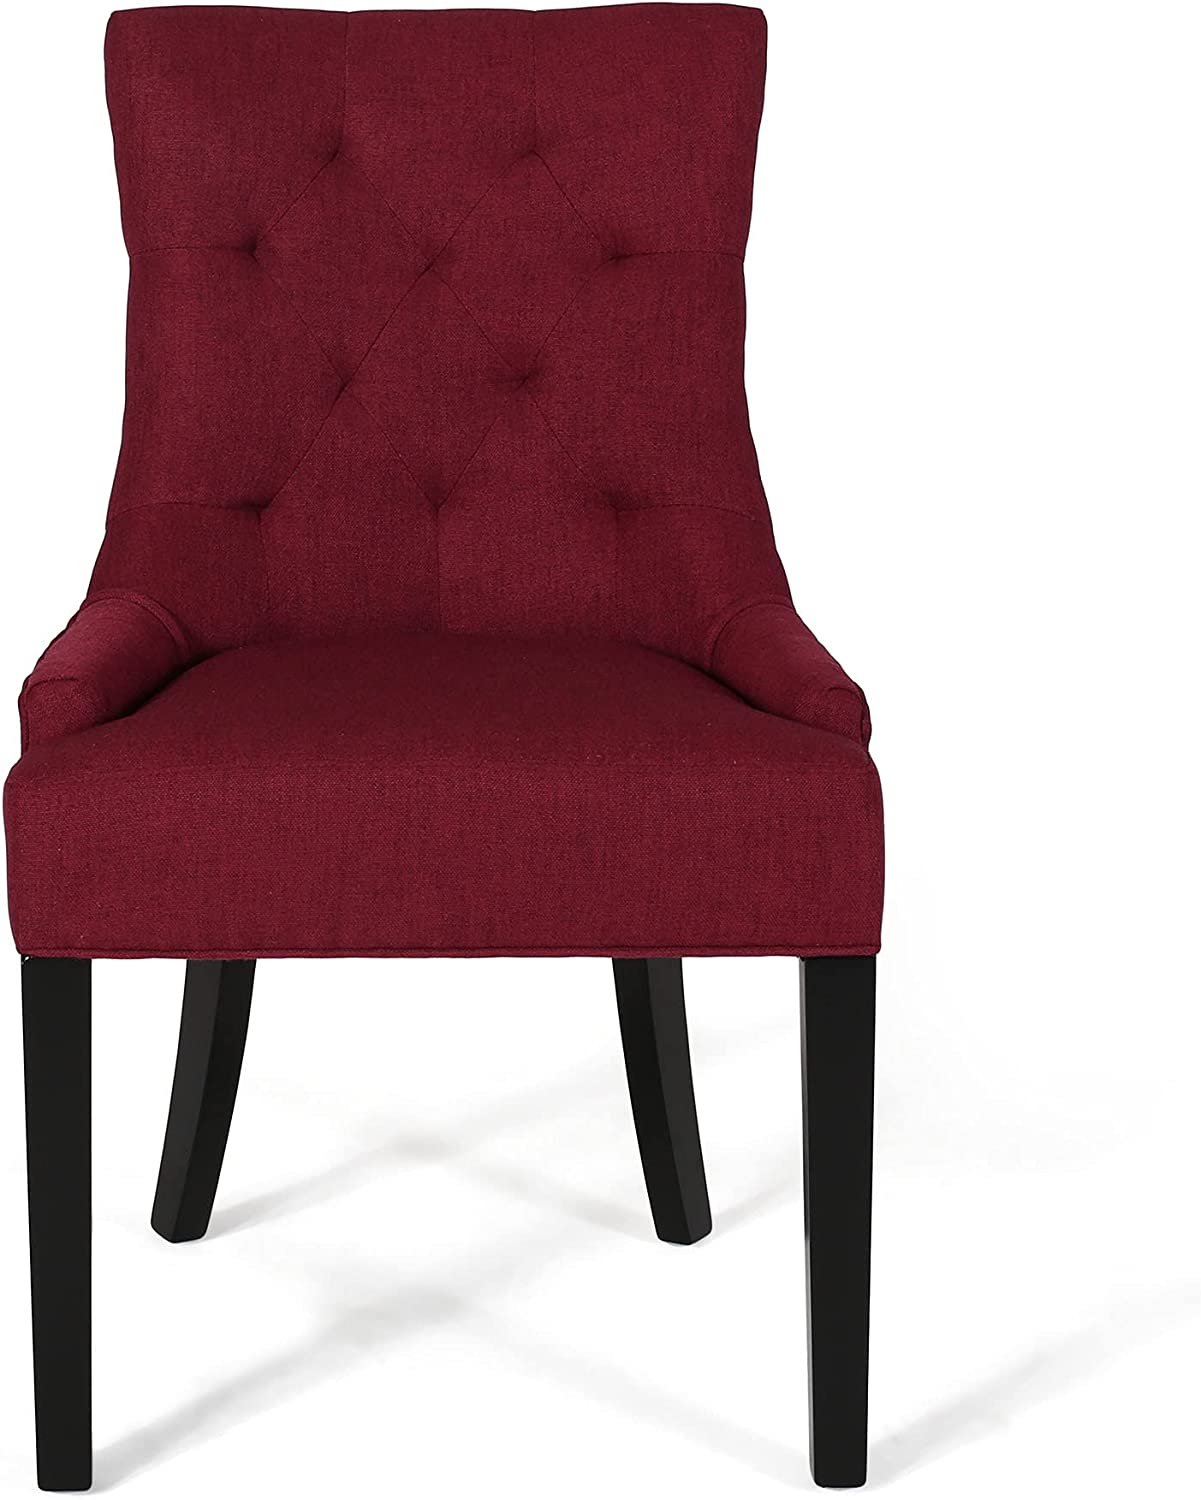 Christopher Knight Home Cheney Dining Chair, Deep Red + Dark Brown